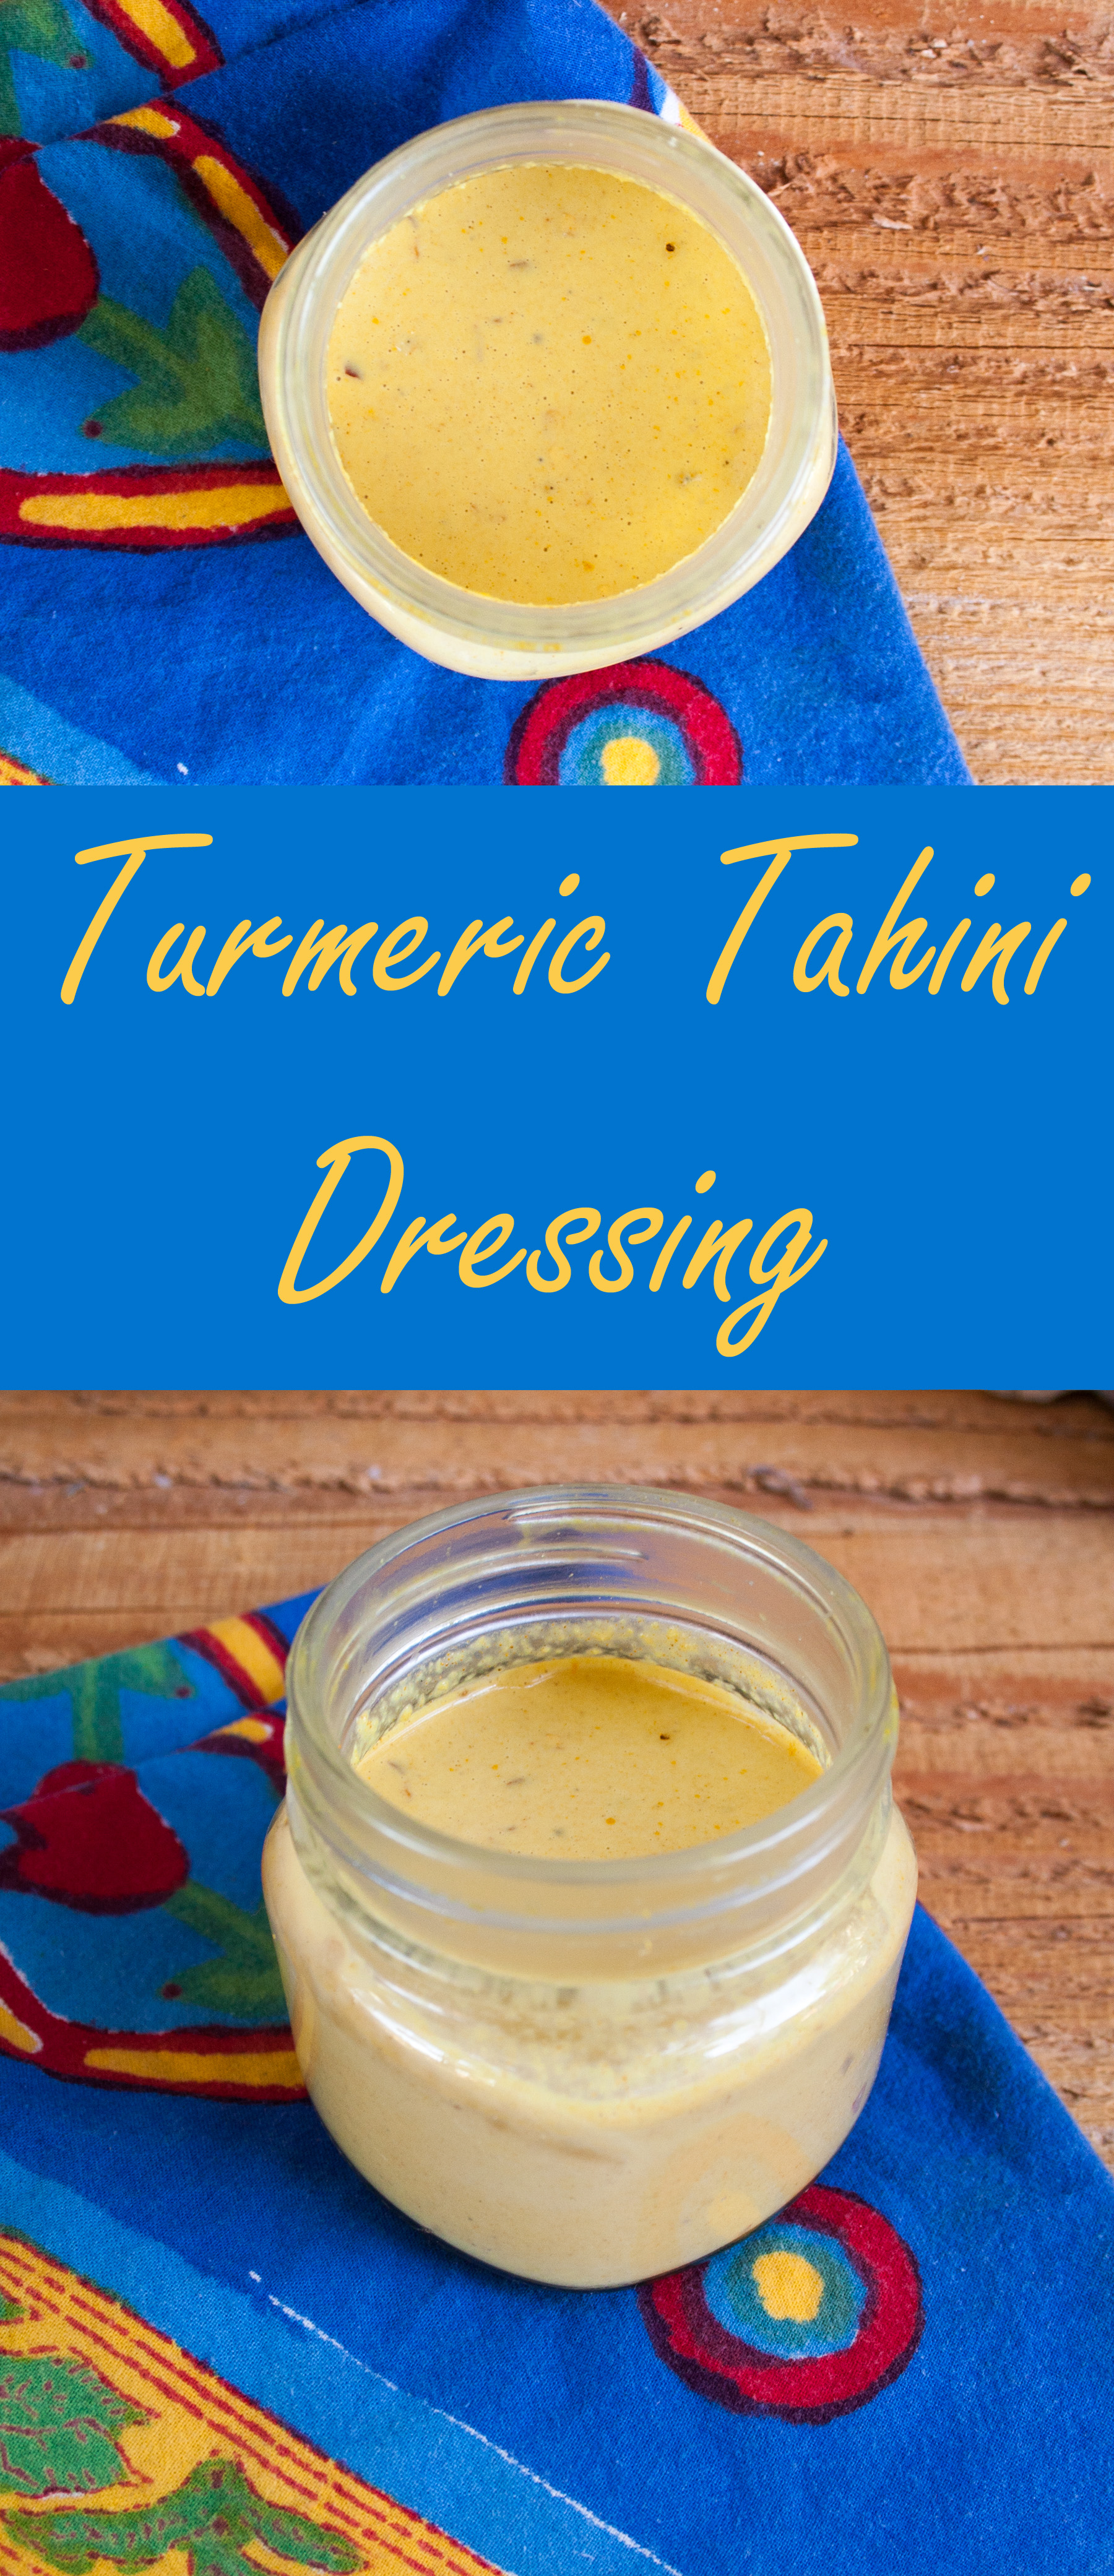 Turmeric Tahini Dressing - This savory dressing is really versatile. It goes well with sweet and savory flavors.